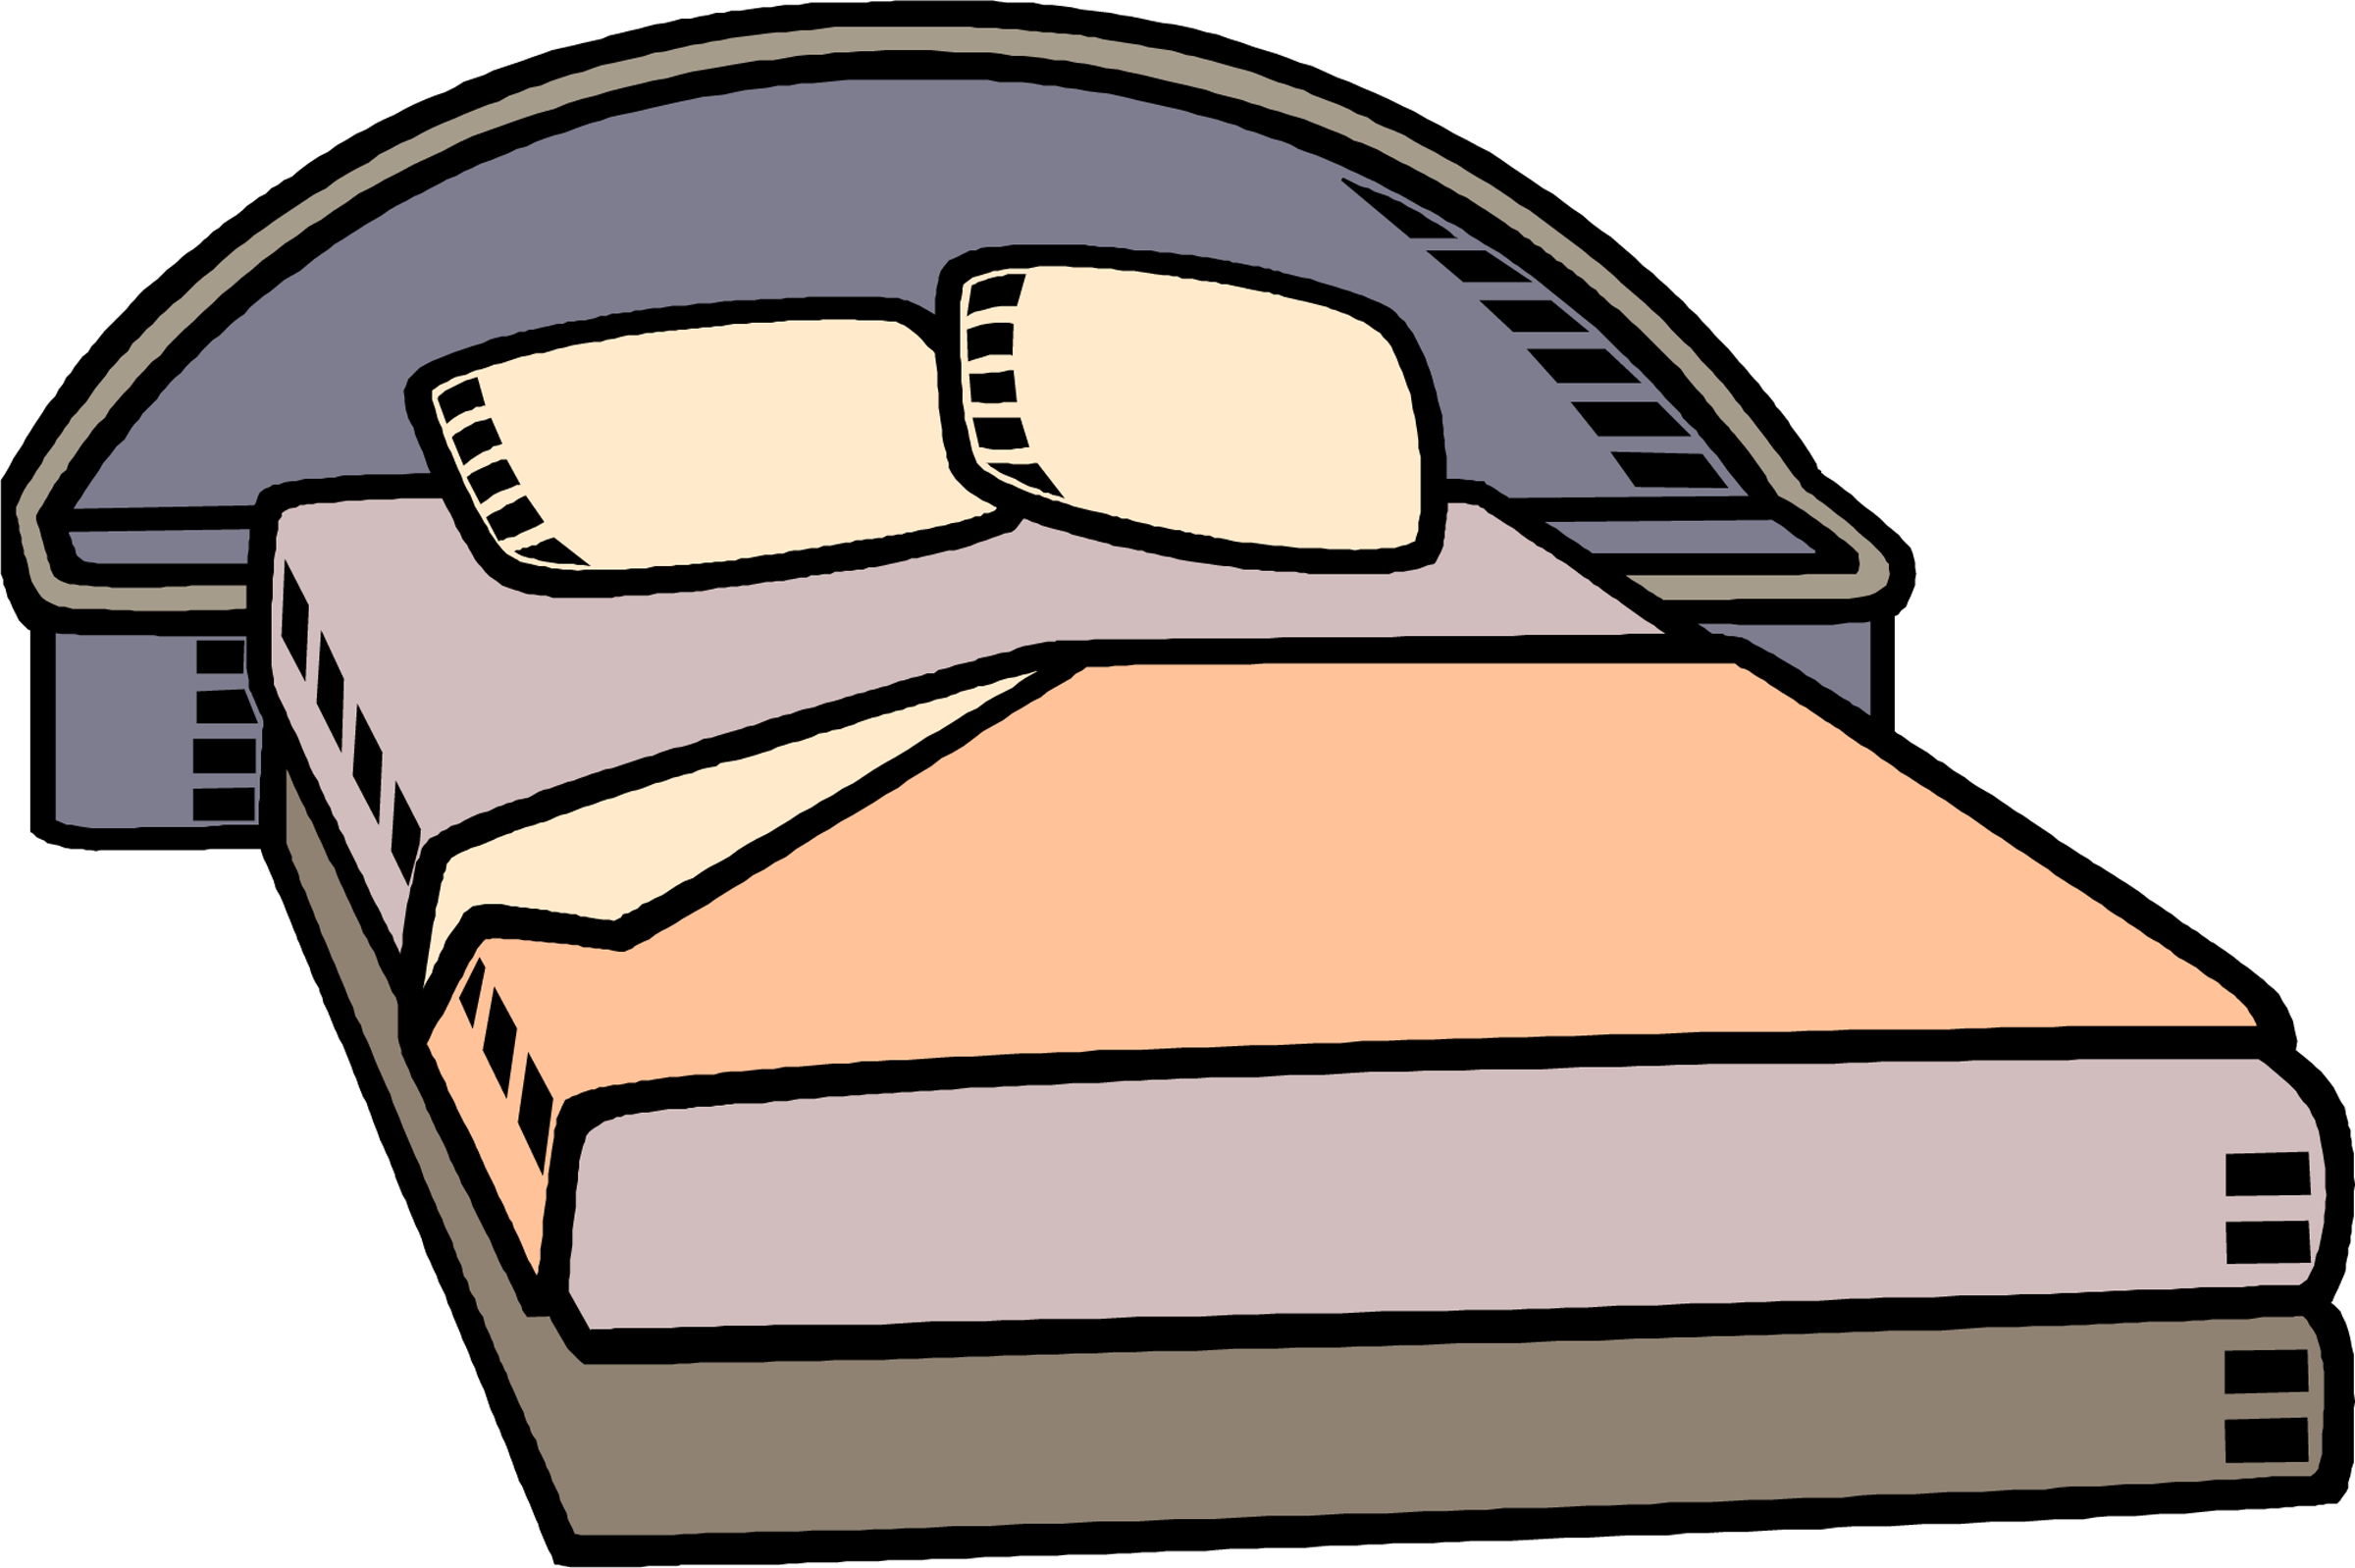 Bed clipart 7 image